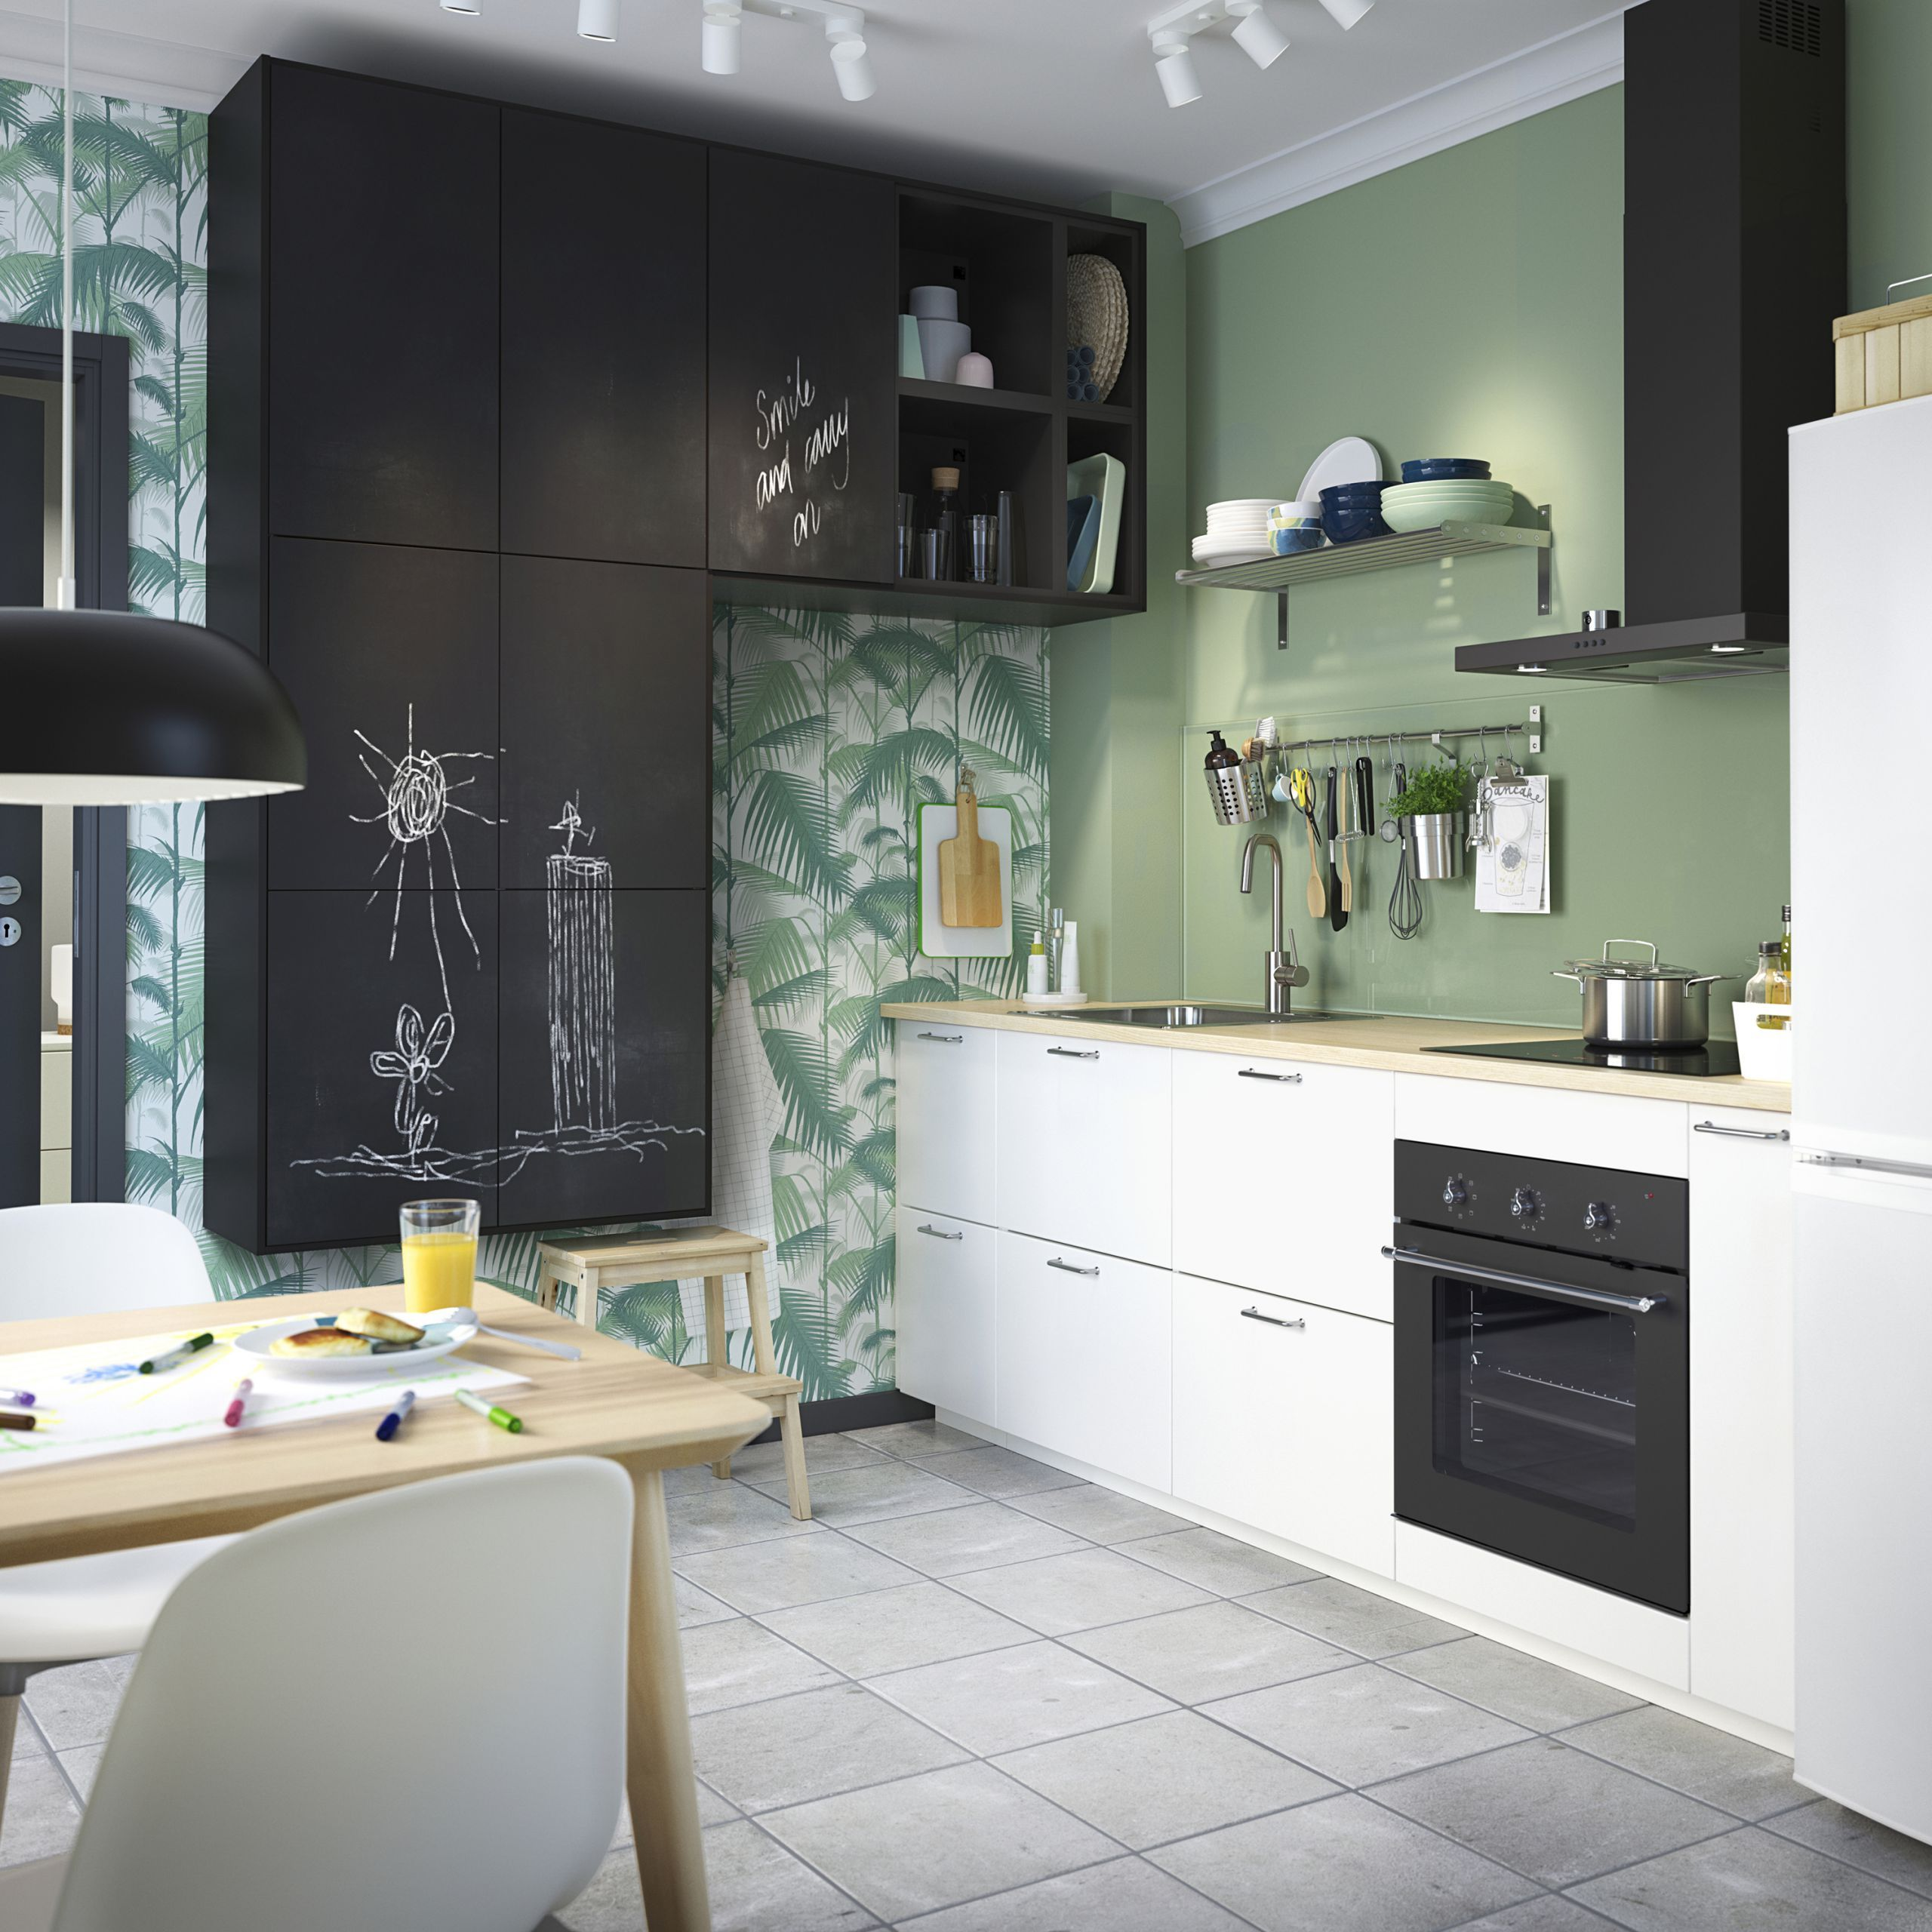 Painted Kitchen Ideas For Walls: Pin On Kujni